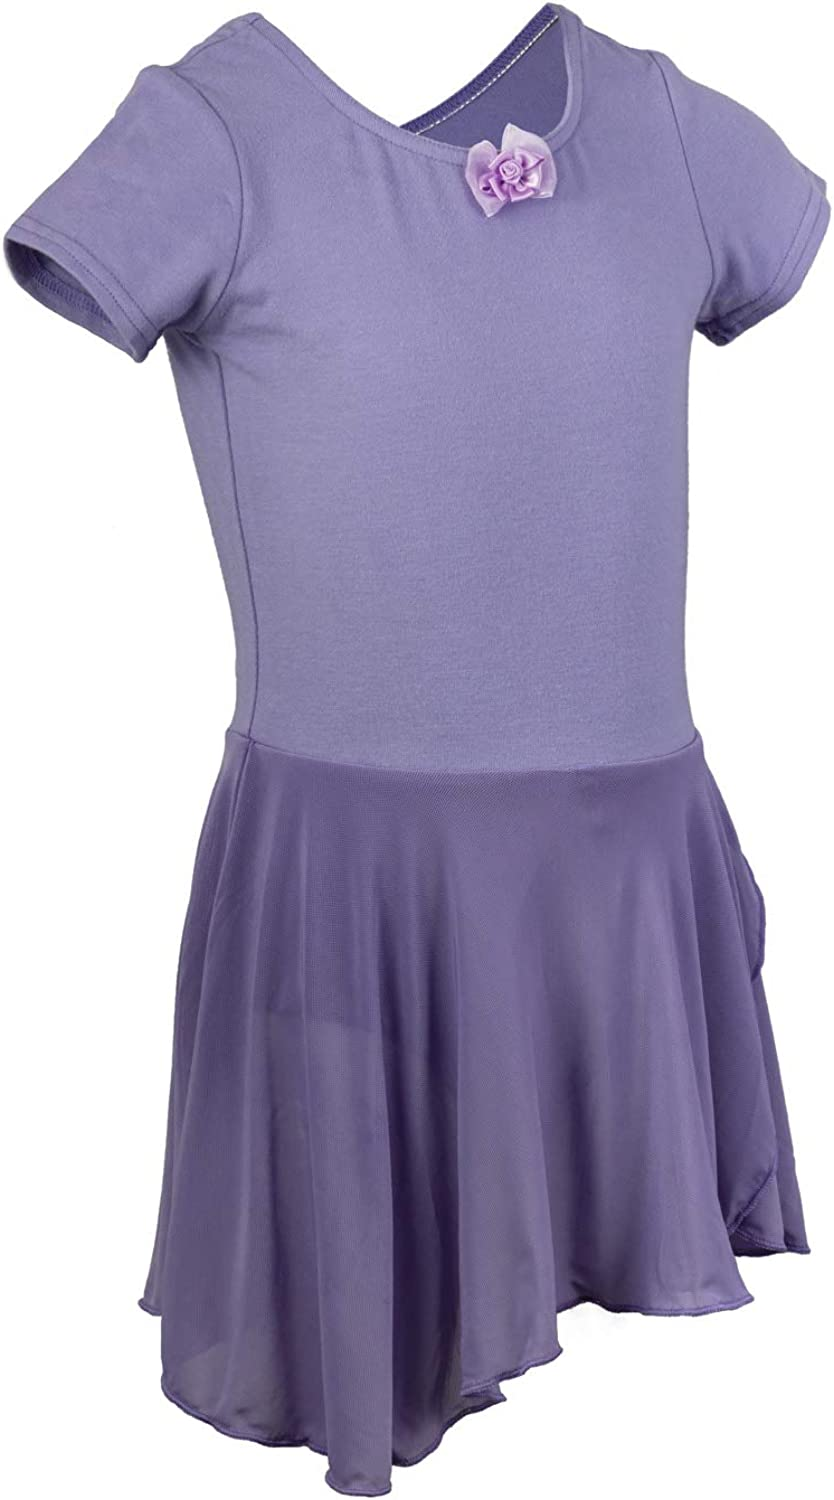 Theatricals 35% OFF excellence Girls Dance Dress TH5510C